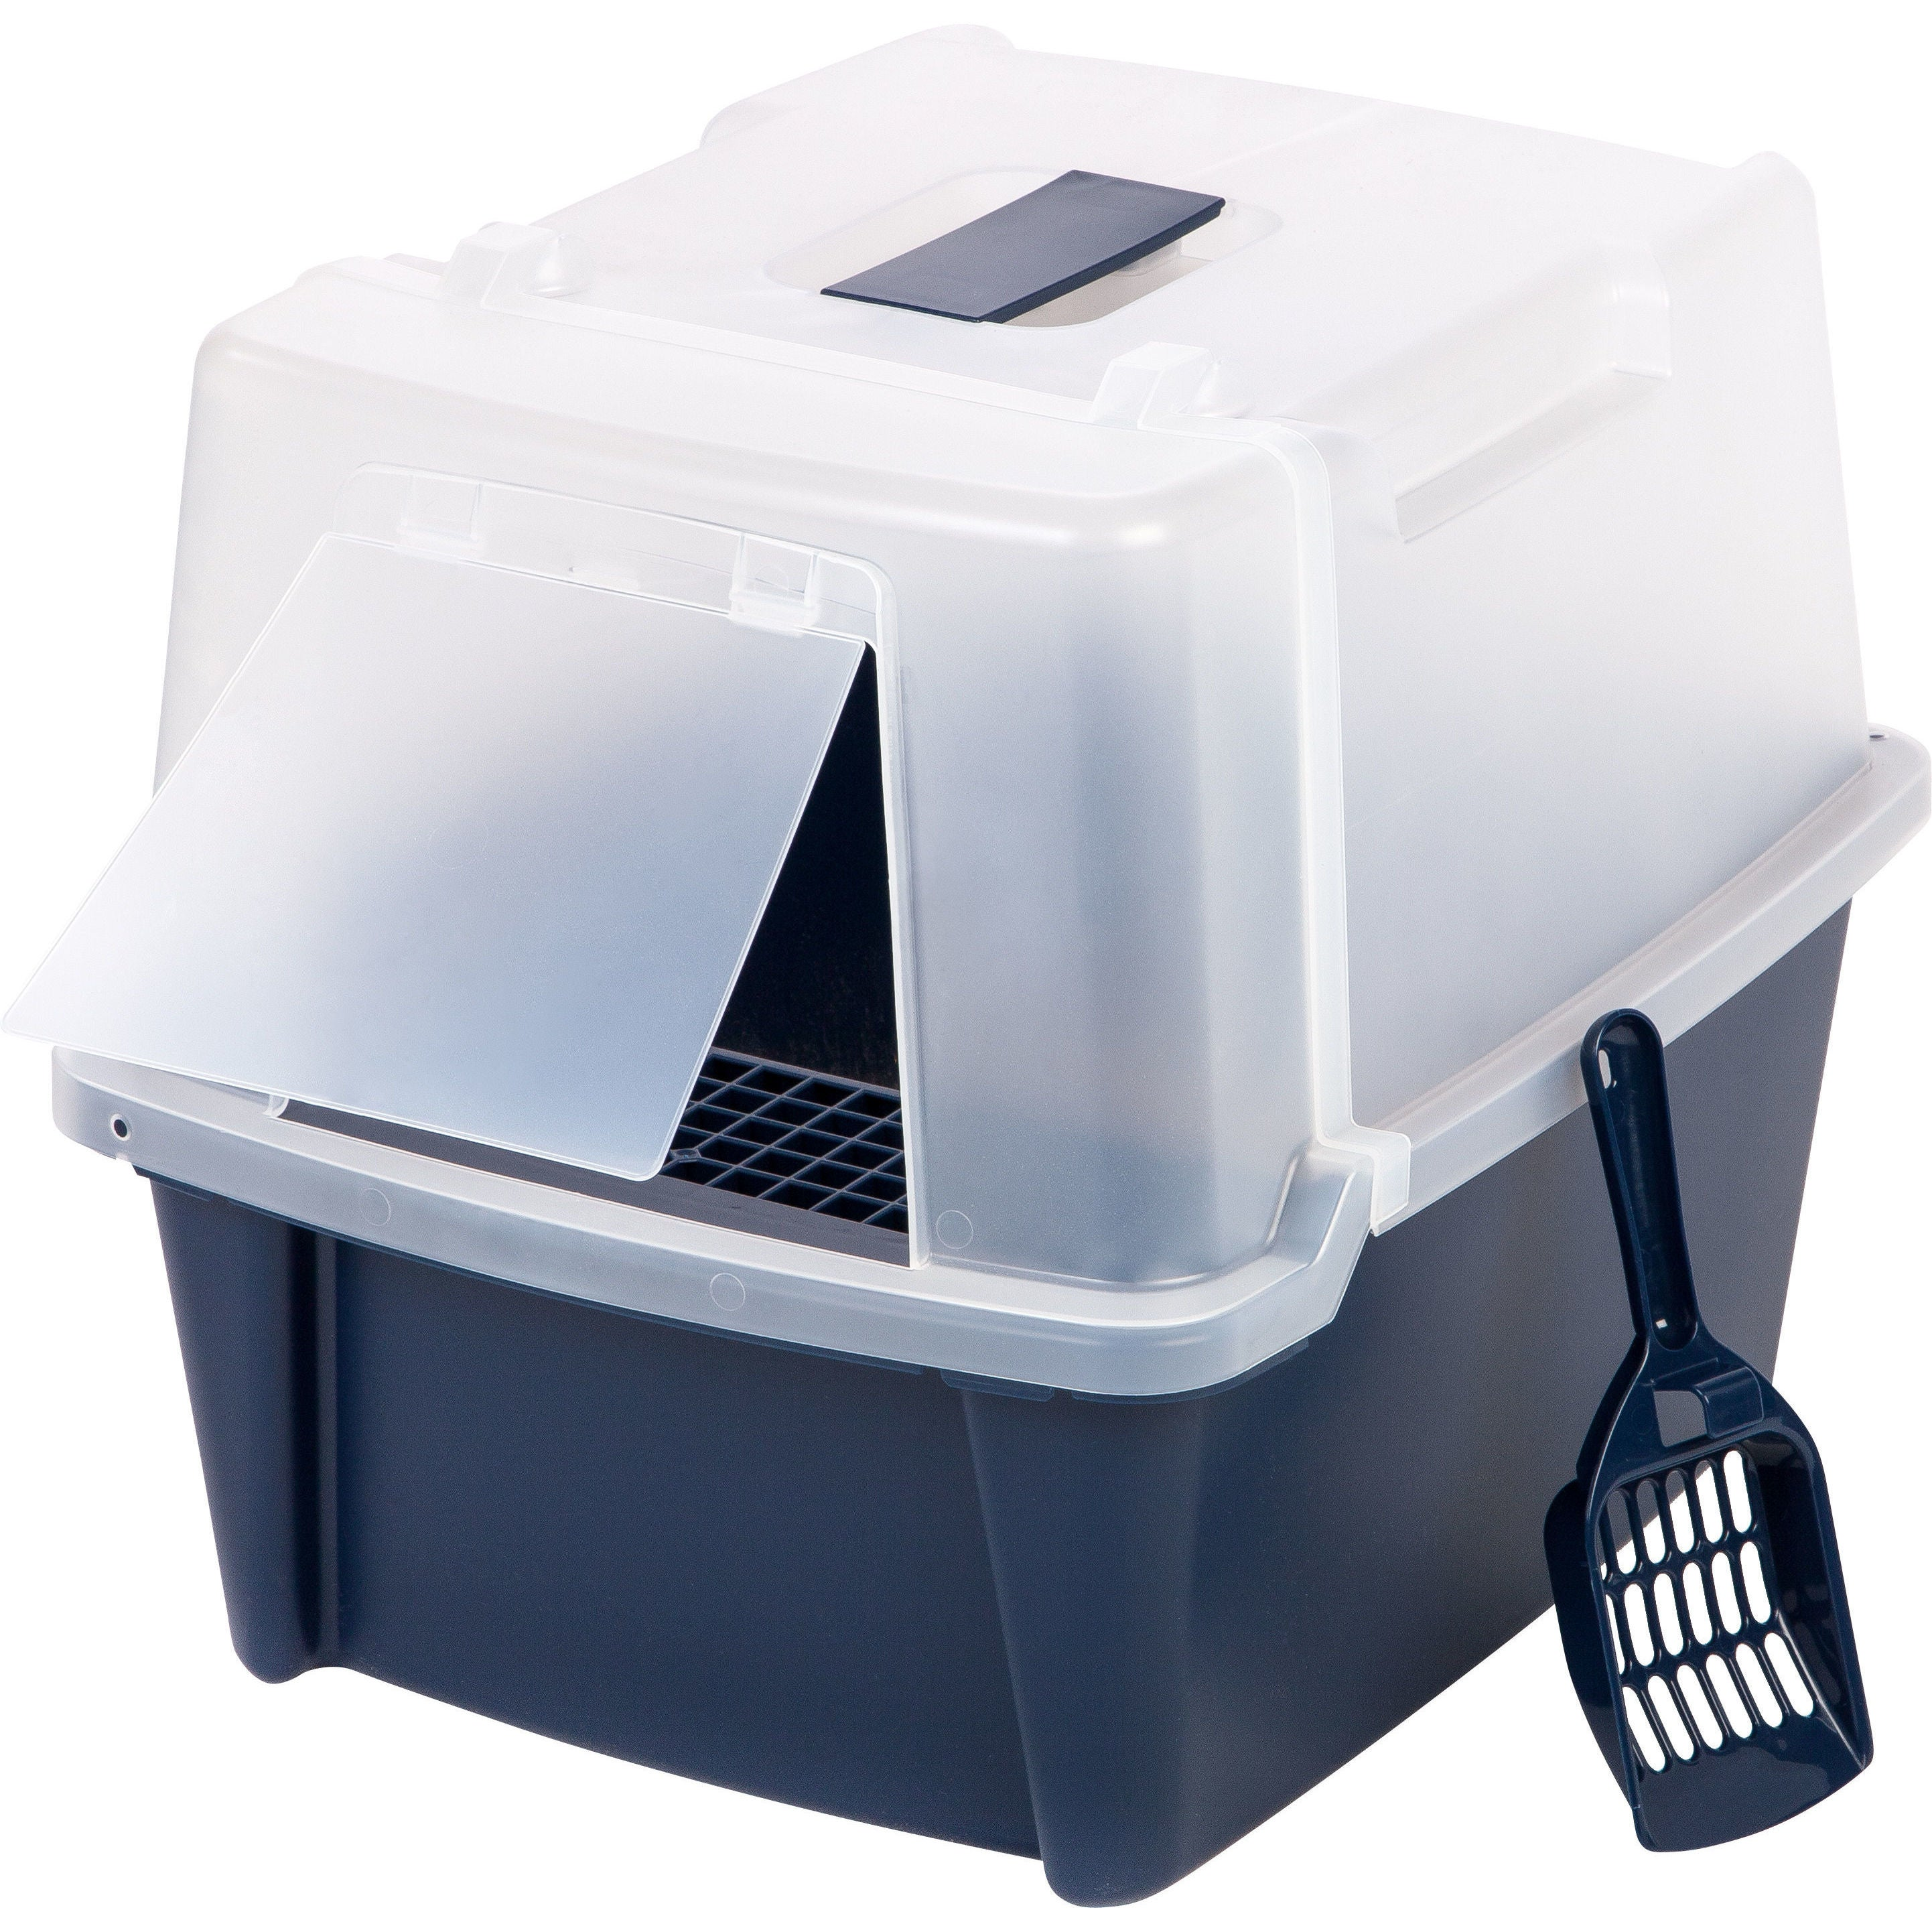 IRIS Large Split-Hood Litter Box with Scoop and Grate, Bl...